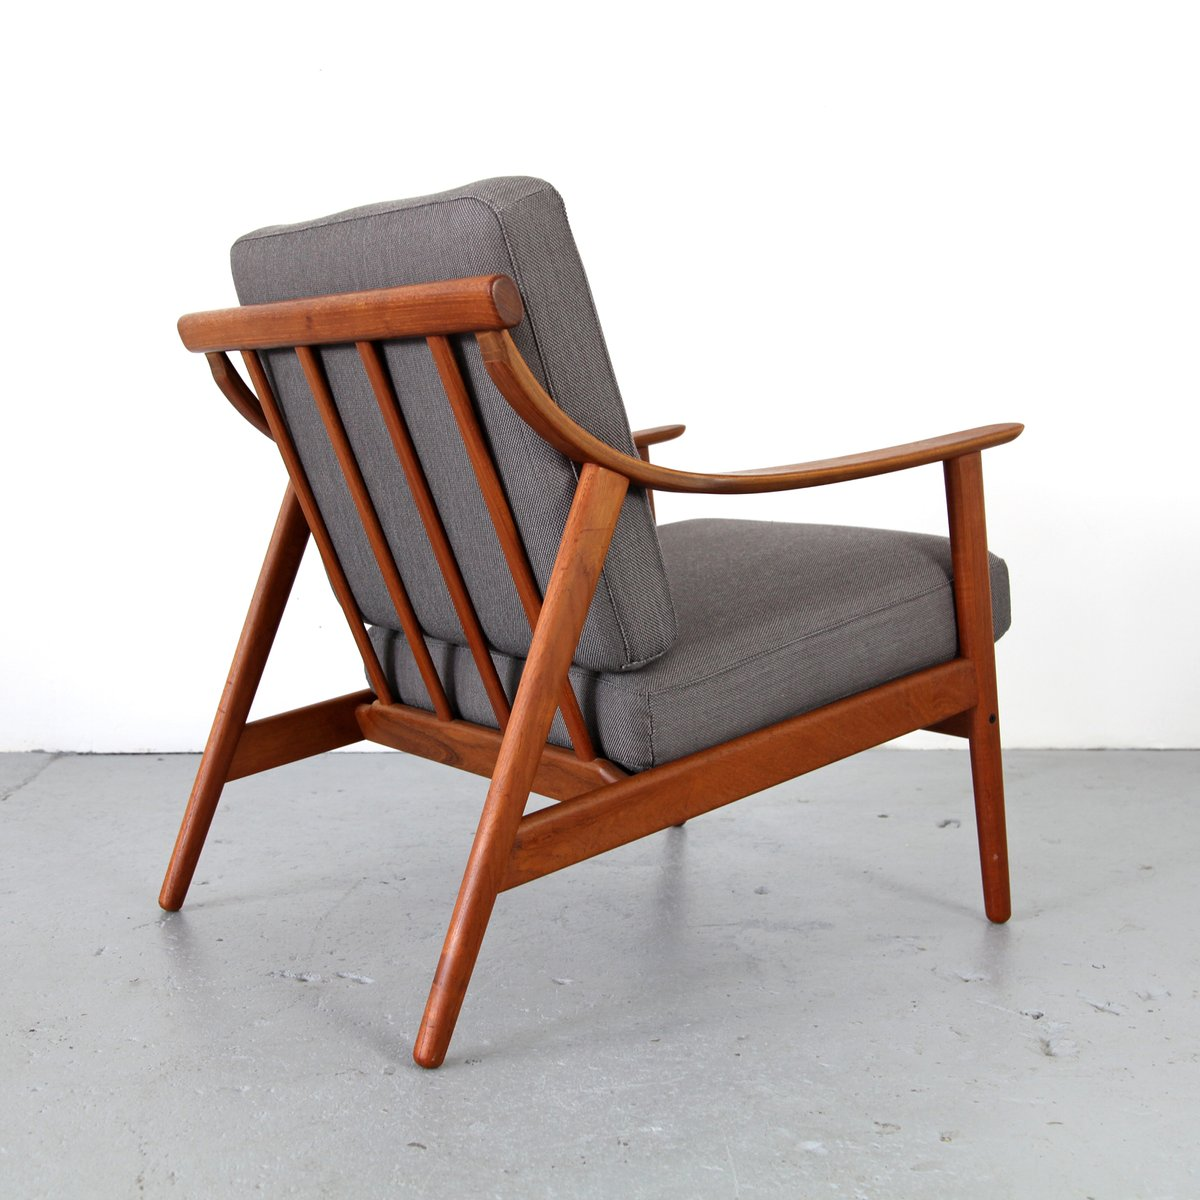 Danish modern lounge chair 1960 for sale at pamono for Stylish lounge